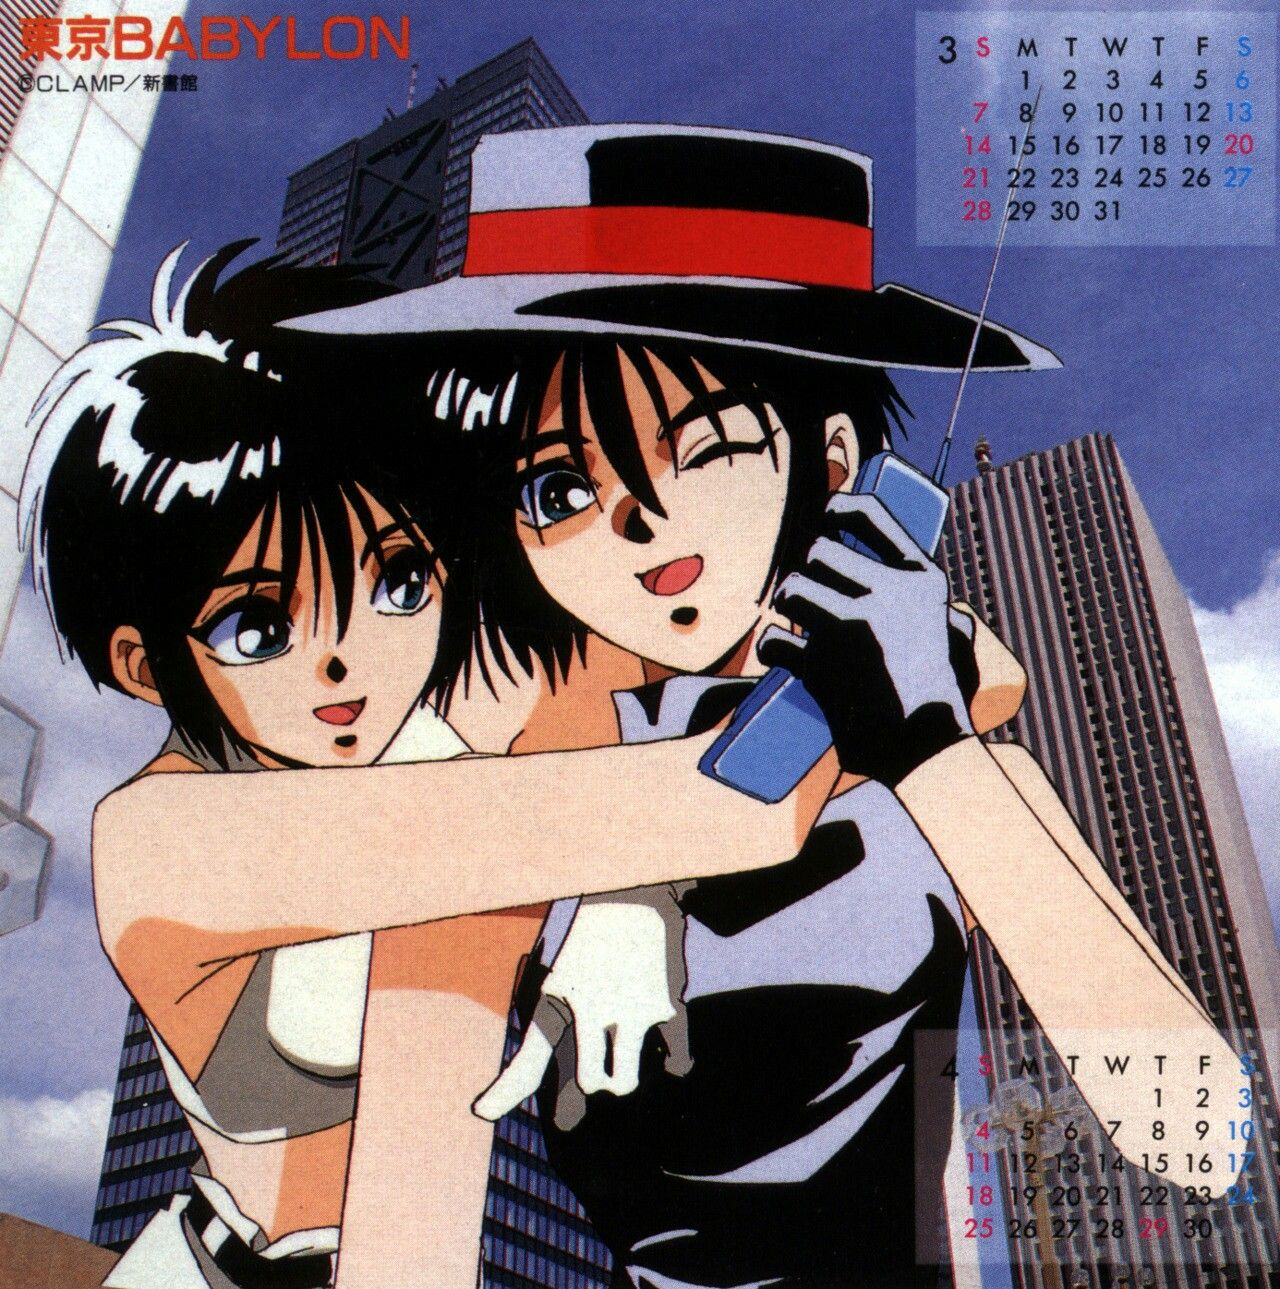 Pin by erin on ☆ tokyo babylon & x [x/1999] Anime, Anime